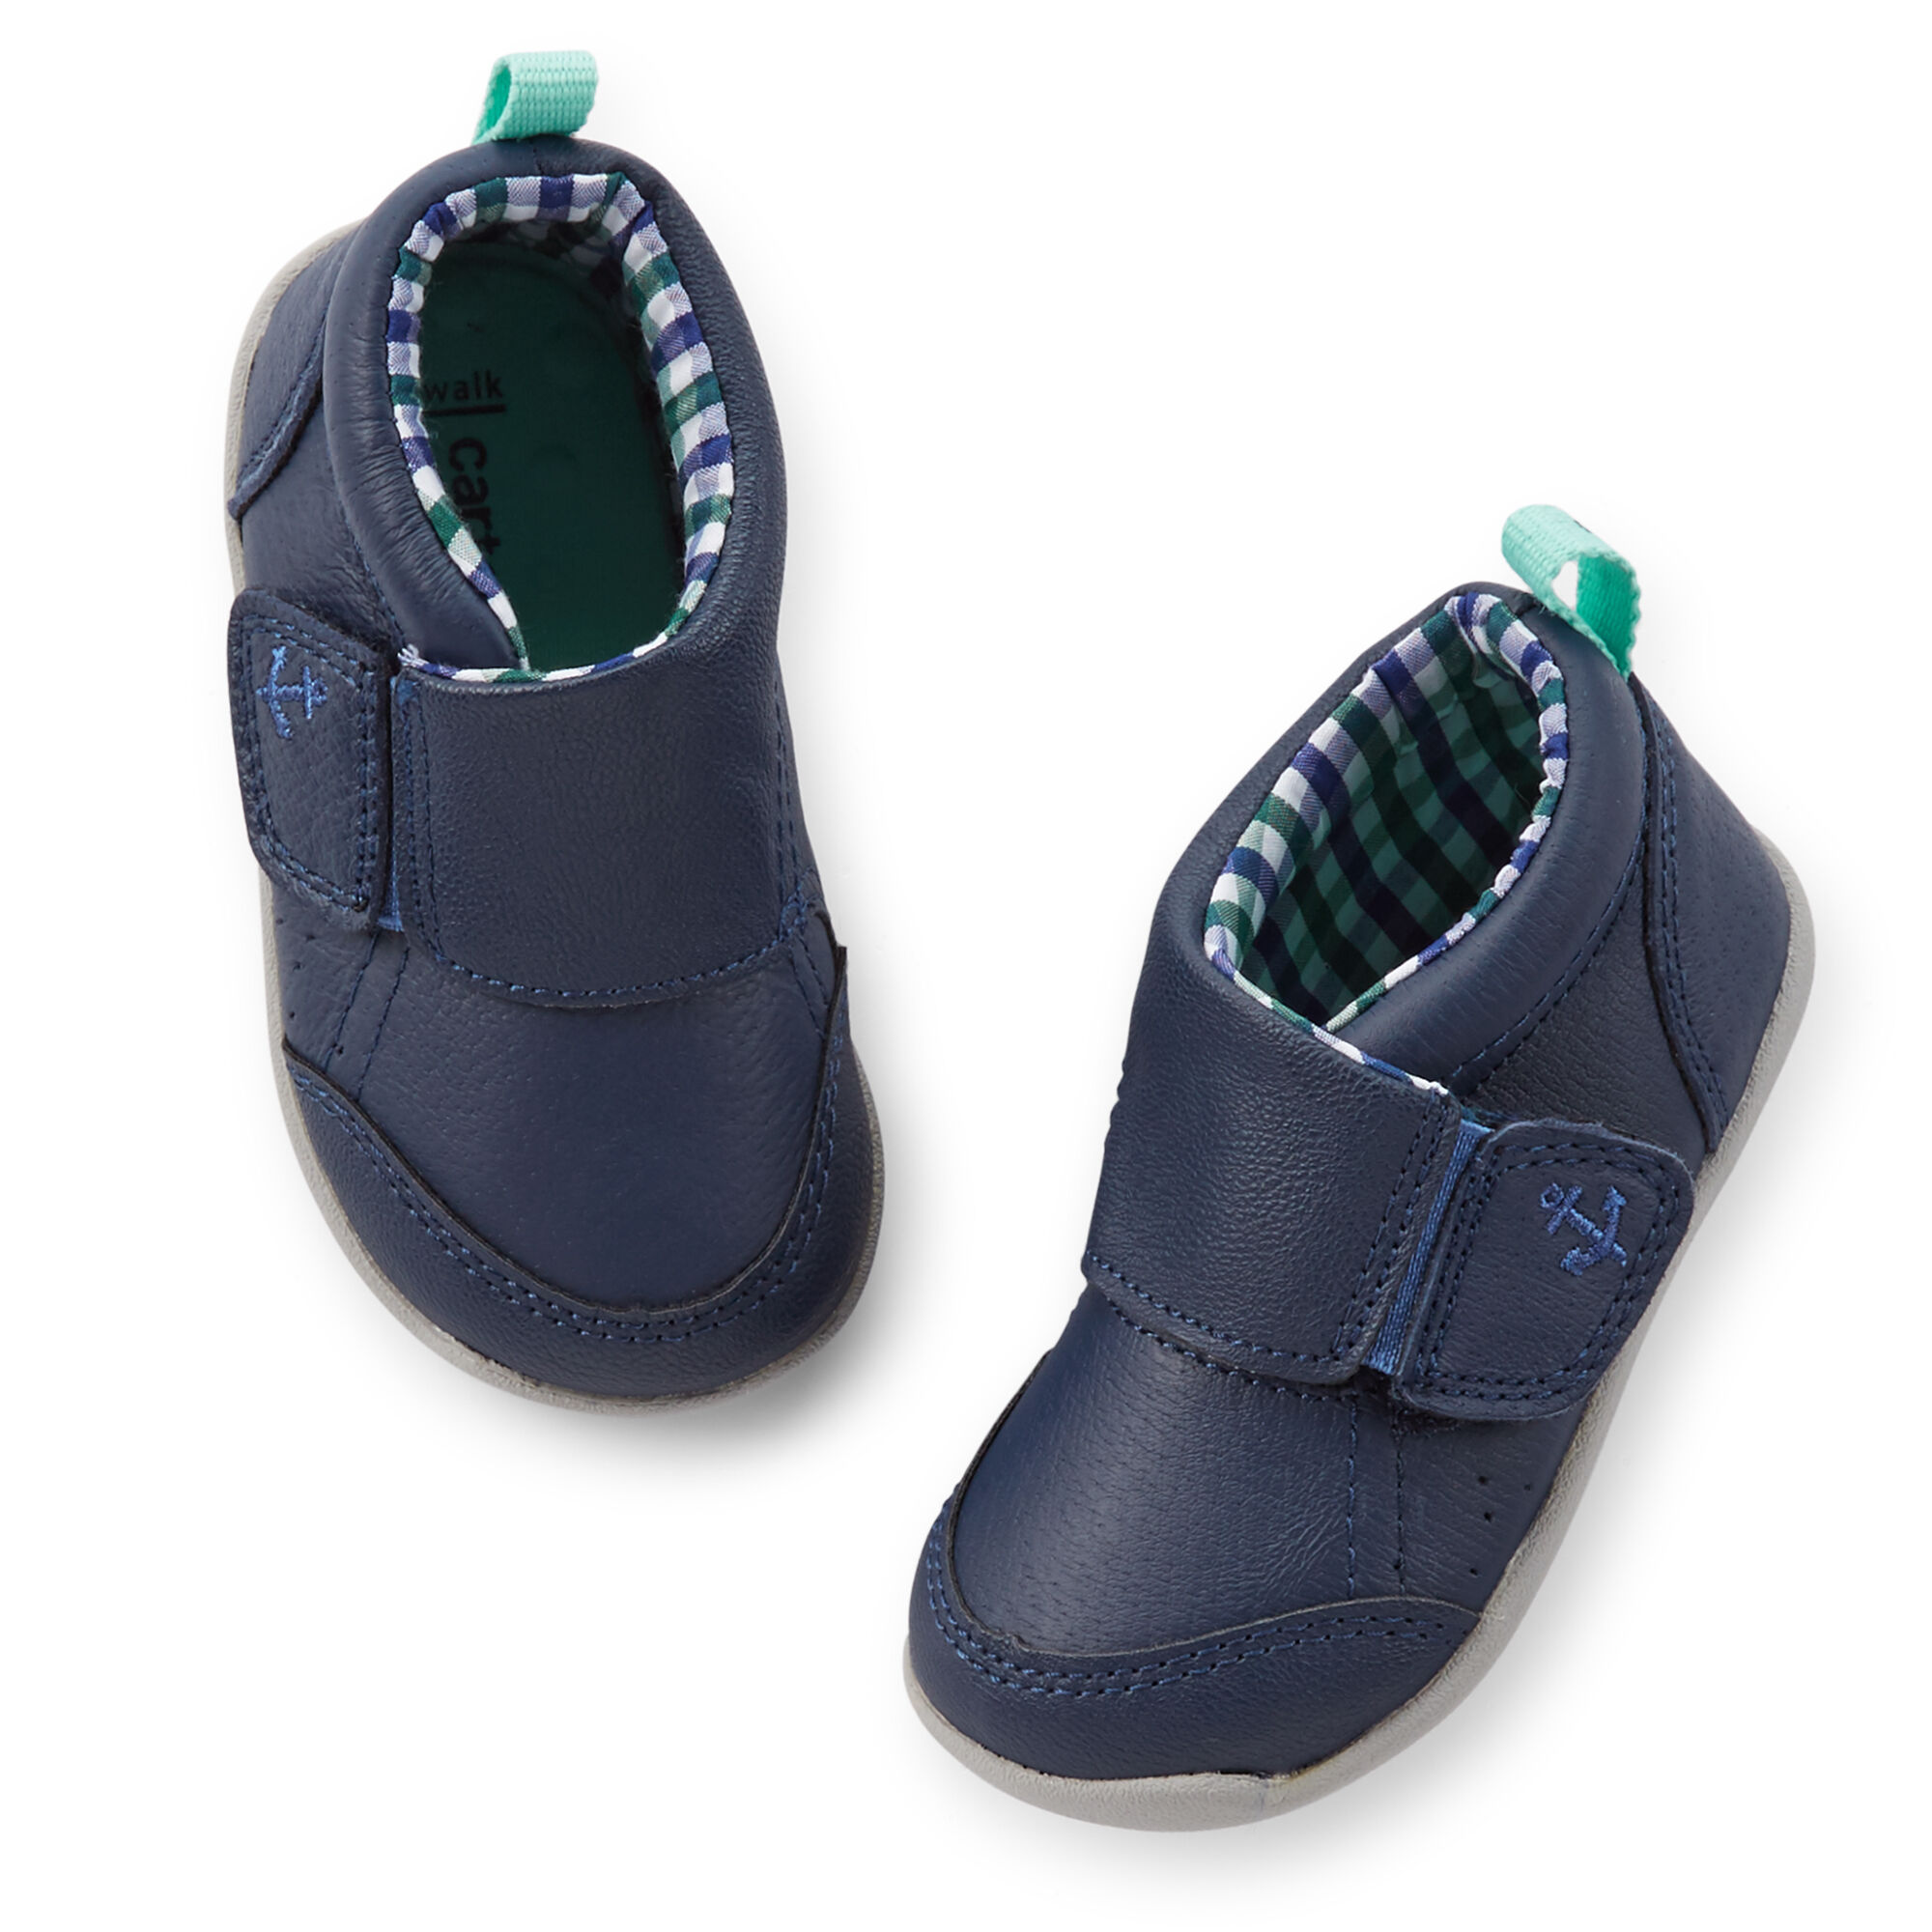 When Should Babies Wear Walking Shoes